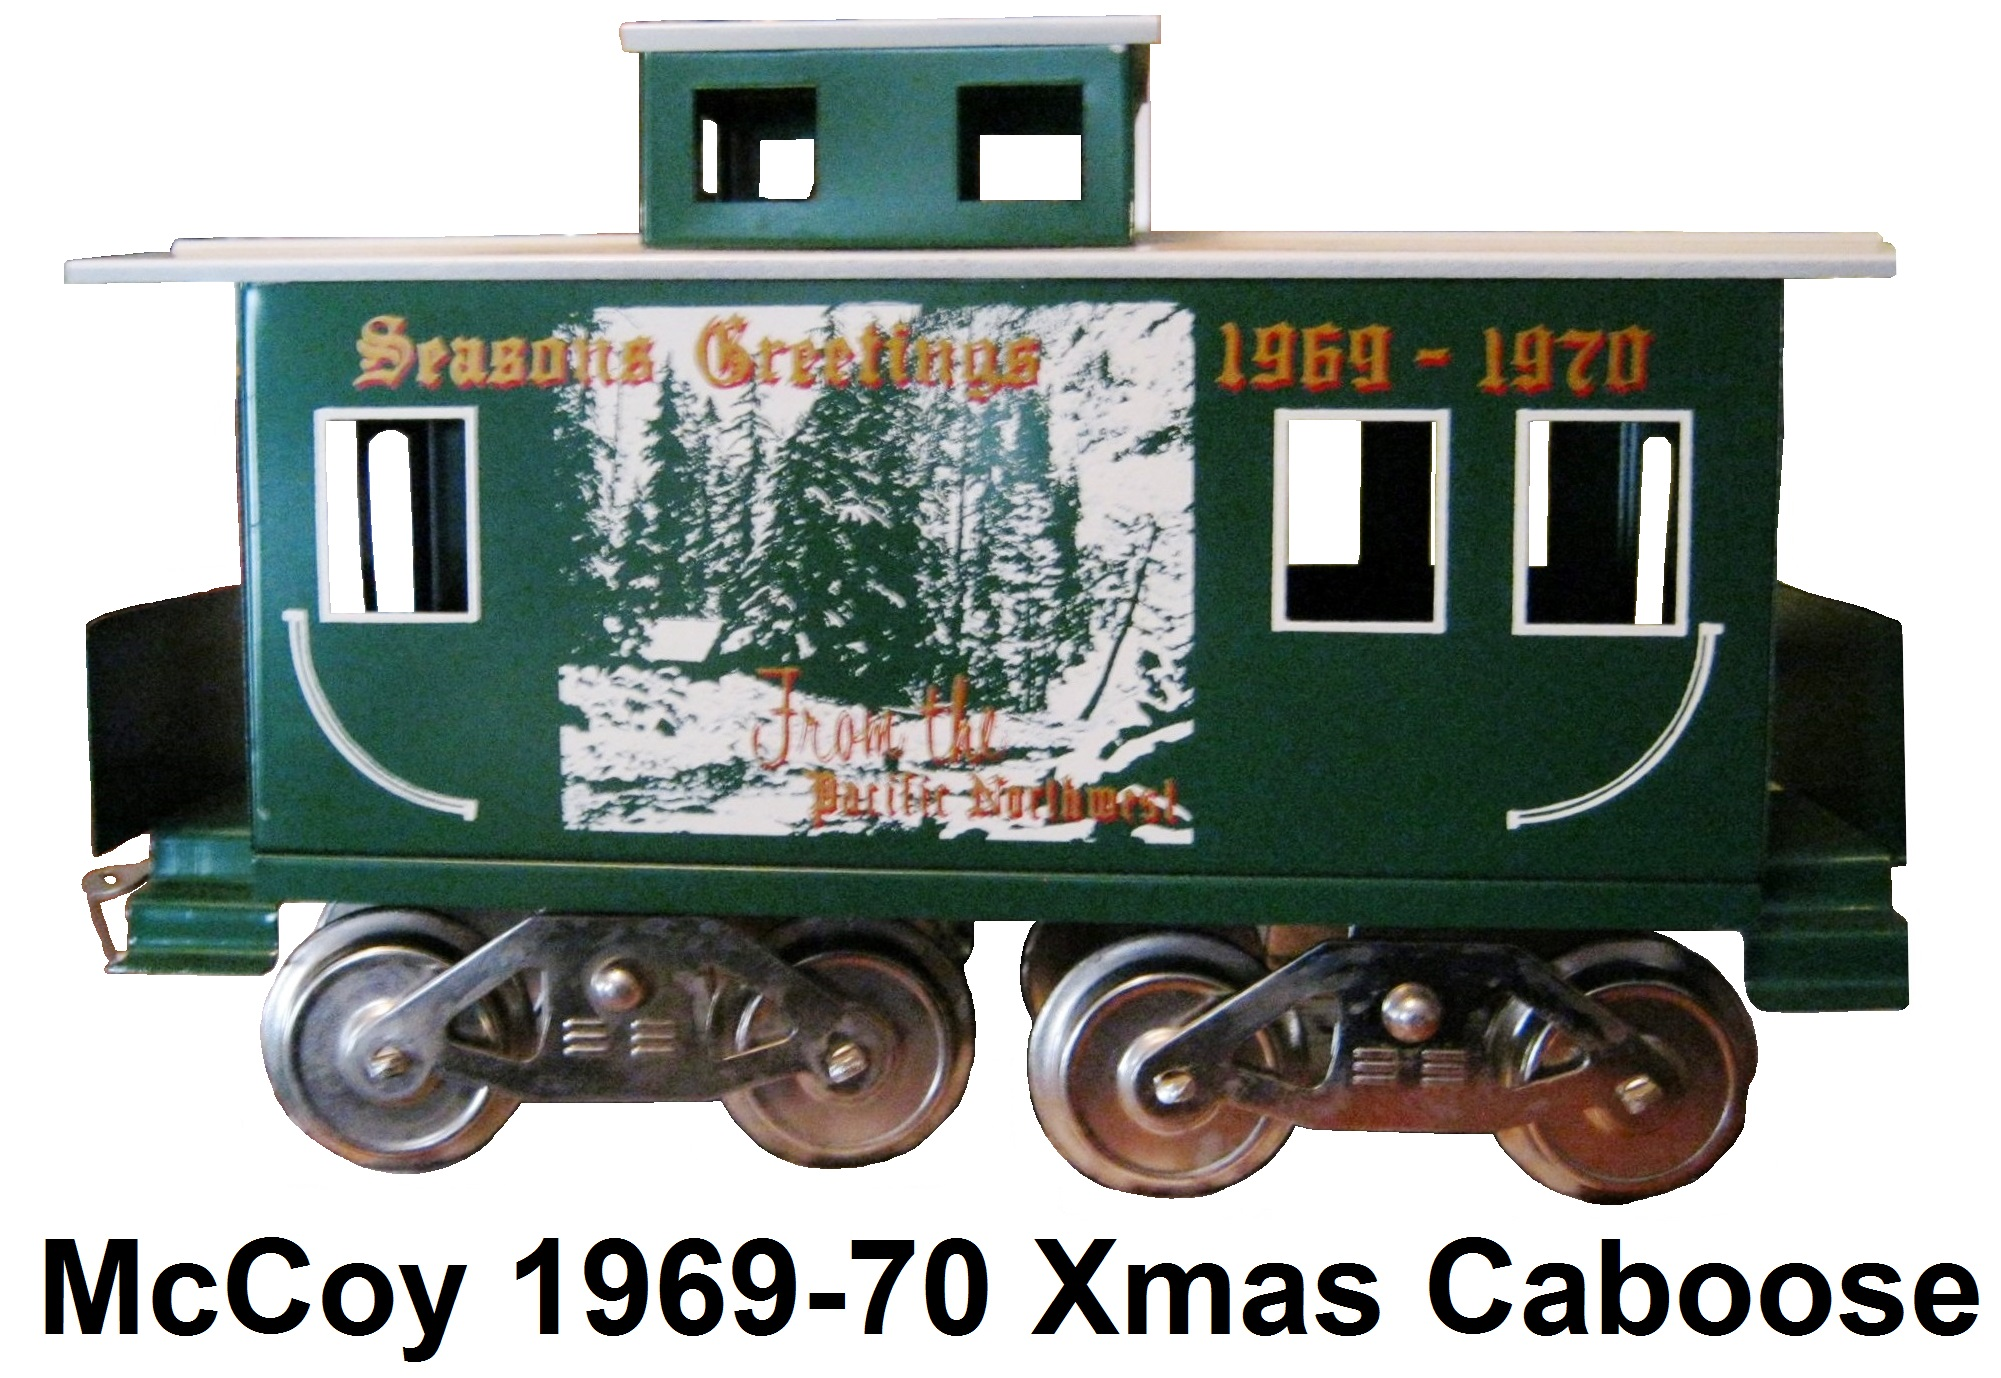 McCoy Season's Greetings 1969-1970 From the Pacific Northwest caboose